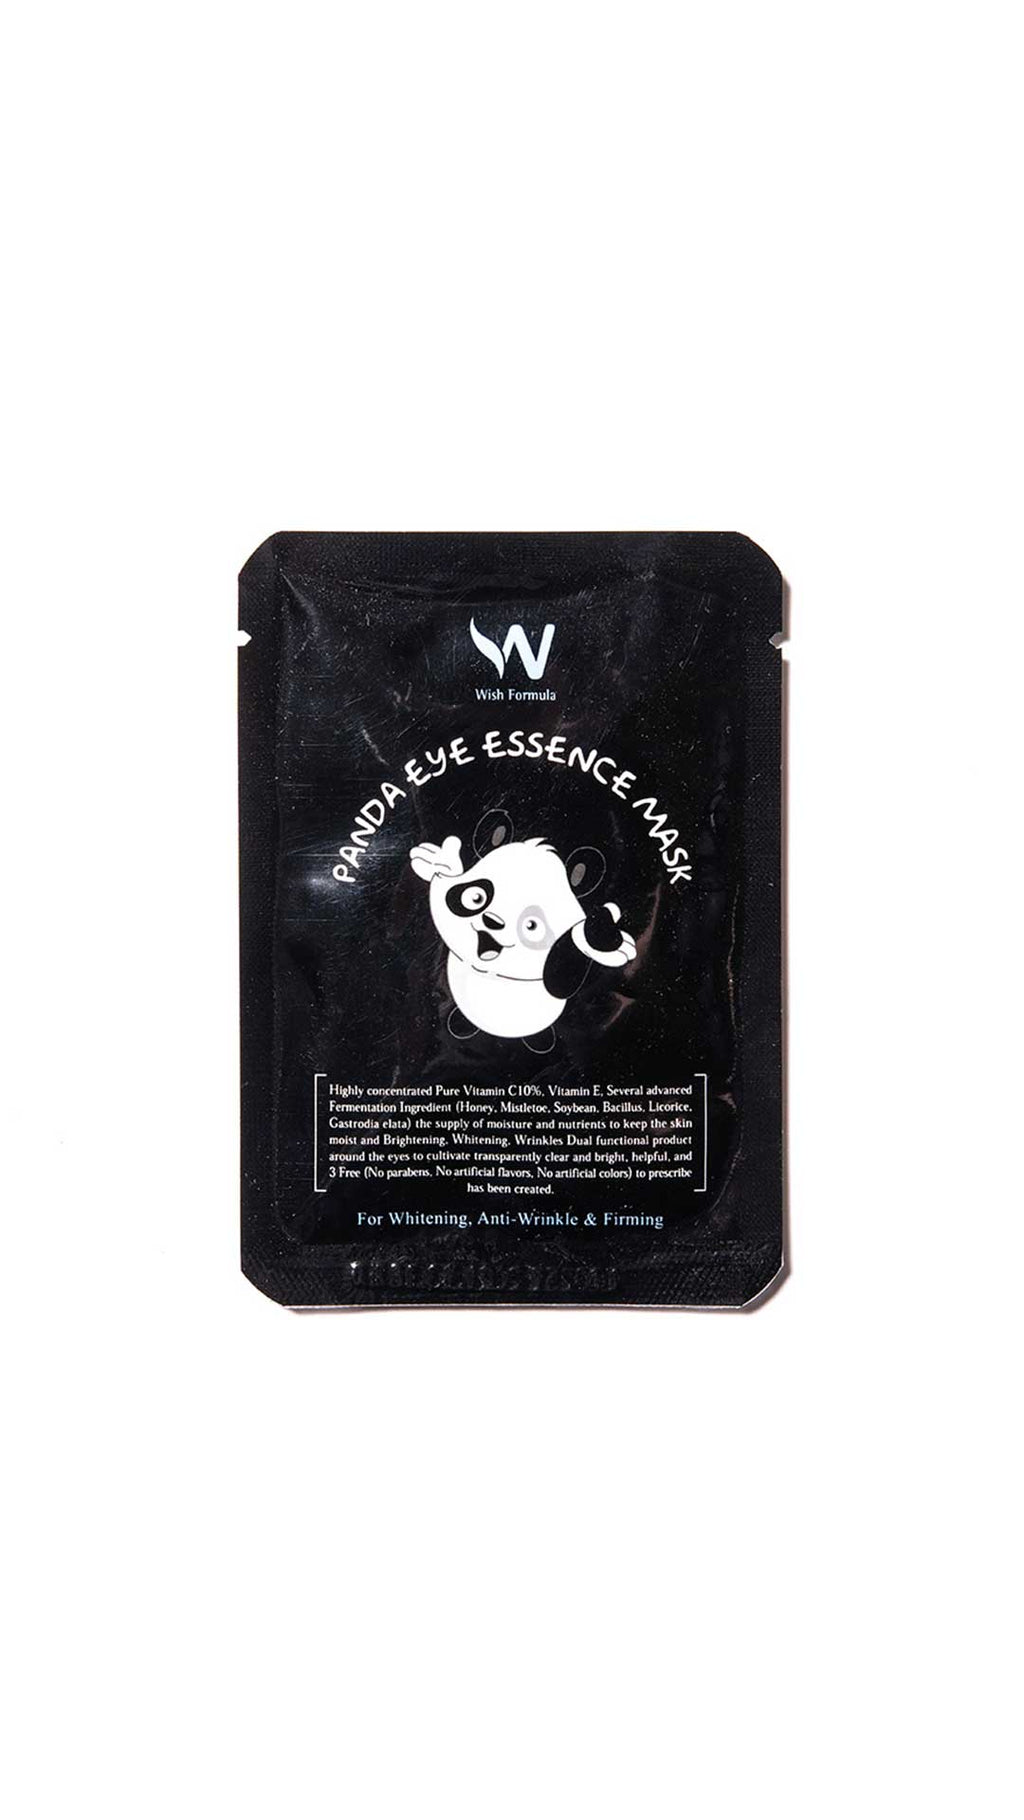 PANDA EYE ESSENCE PATCH SINGLE-USE BRIGHTENING EYE PATCHES